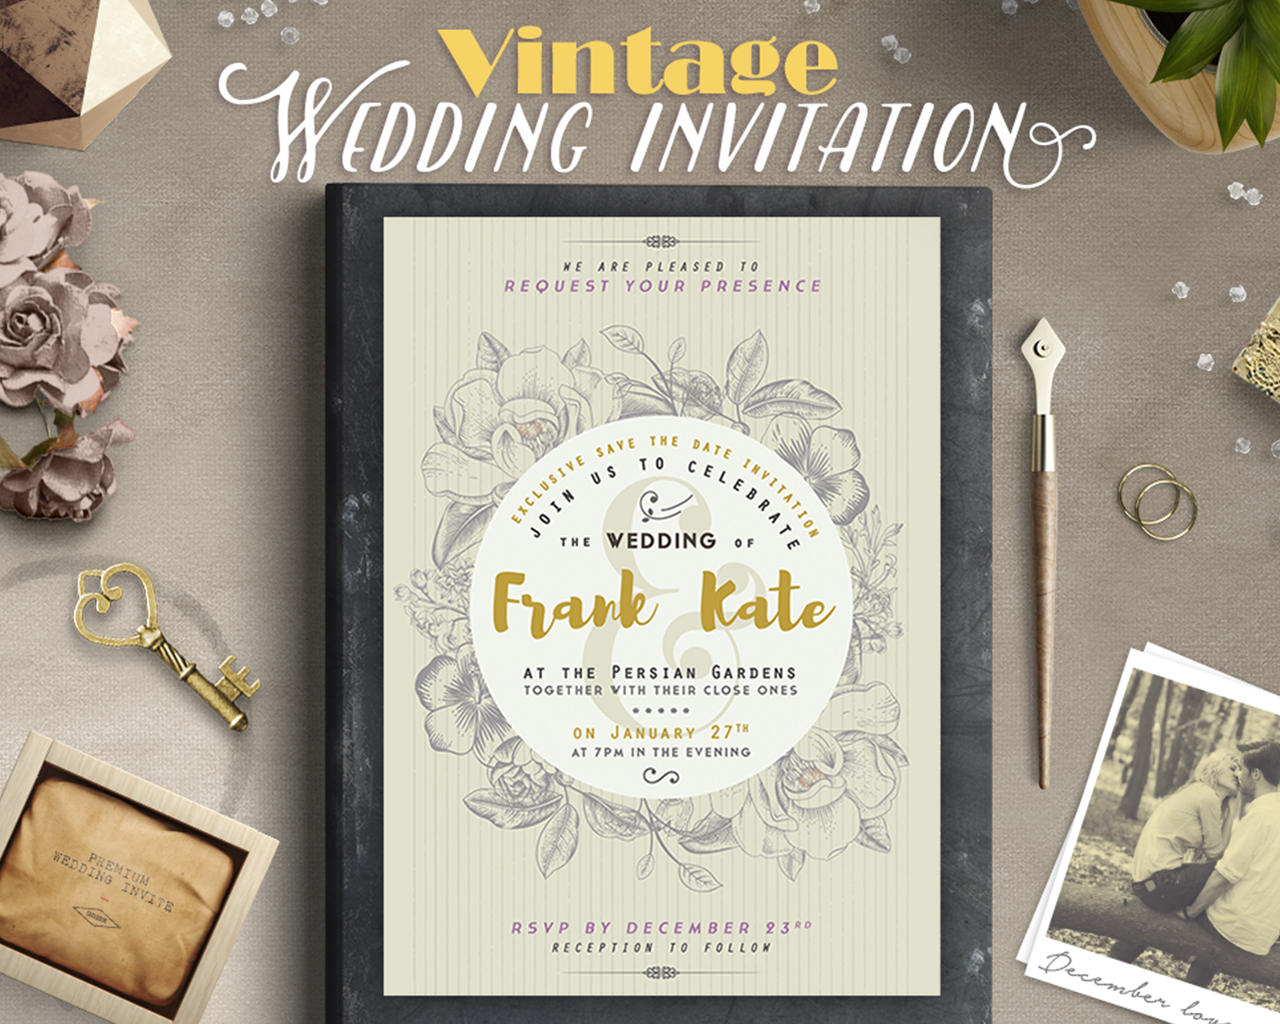 Retro / Vintage Style Wedding Invitation Design by lavie1blonde - 98928